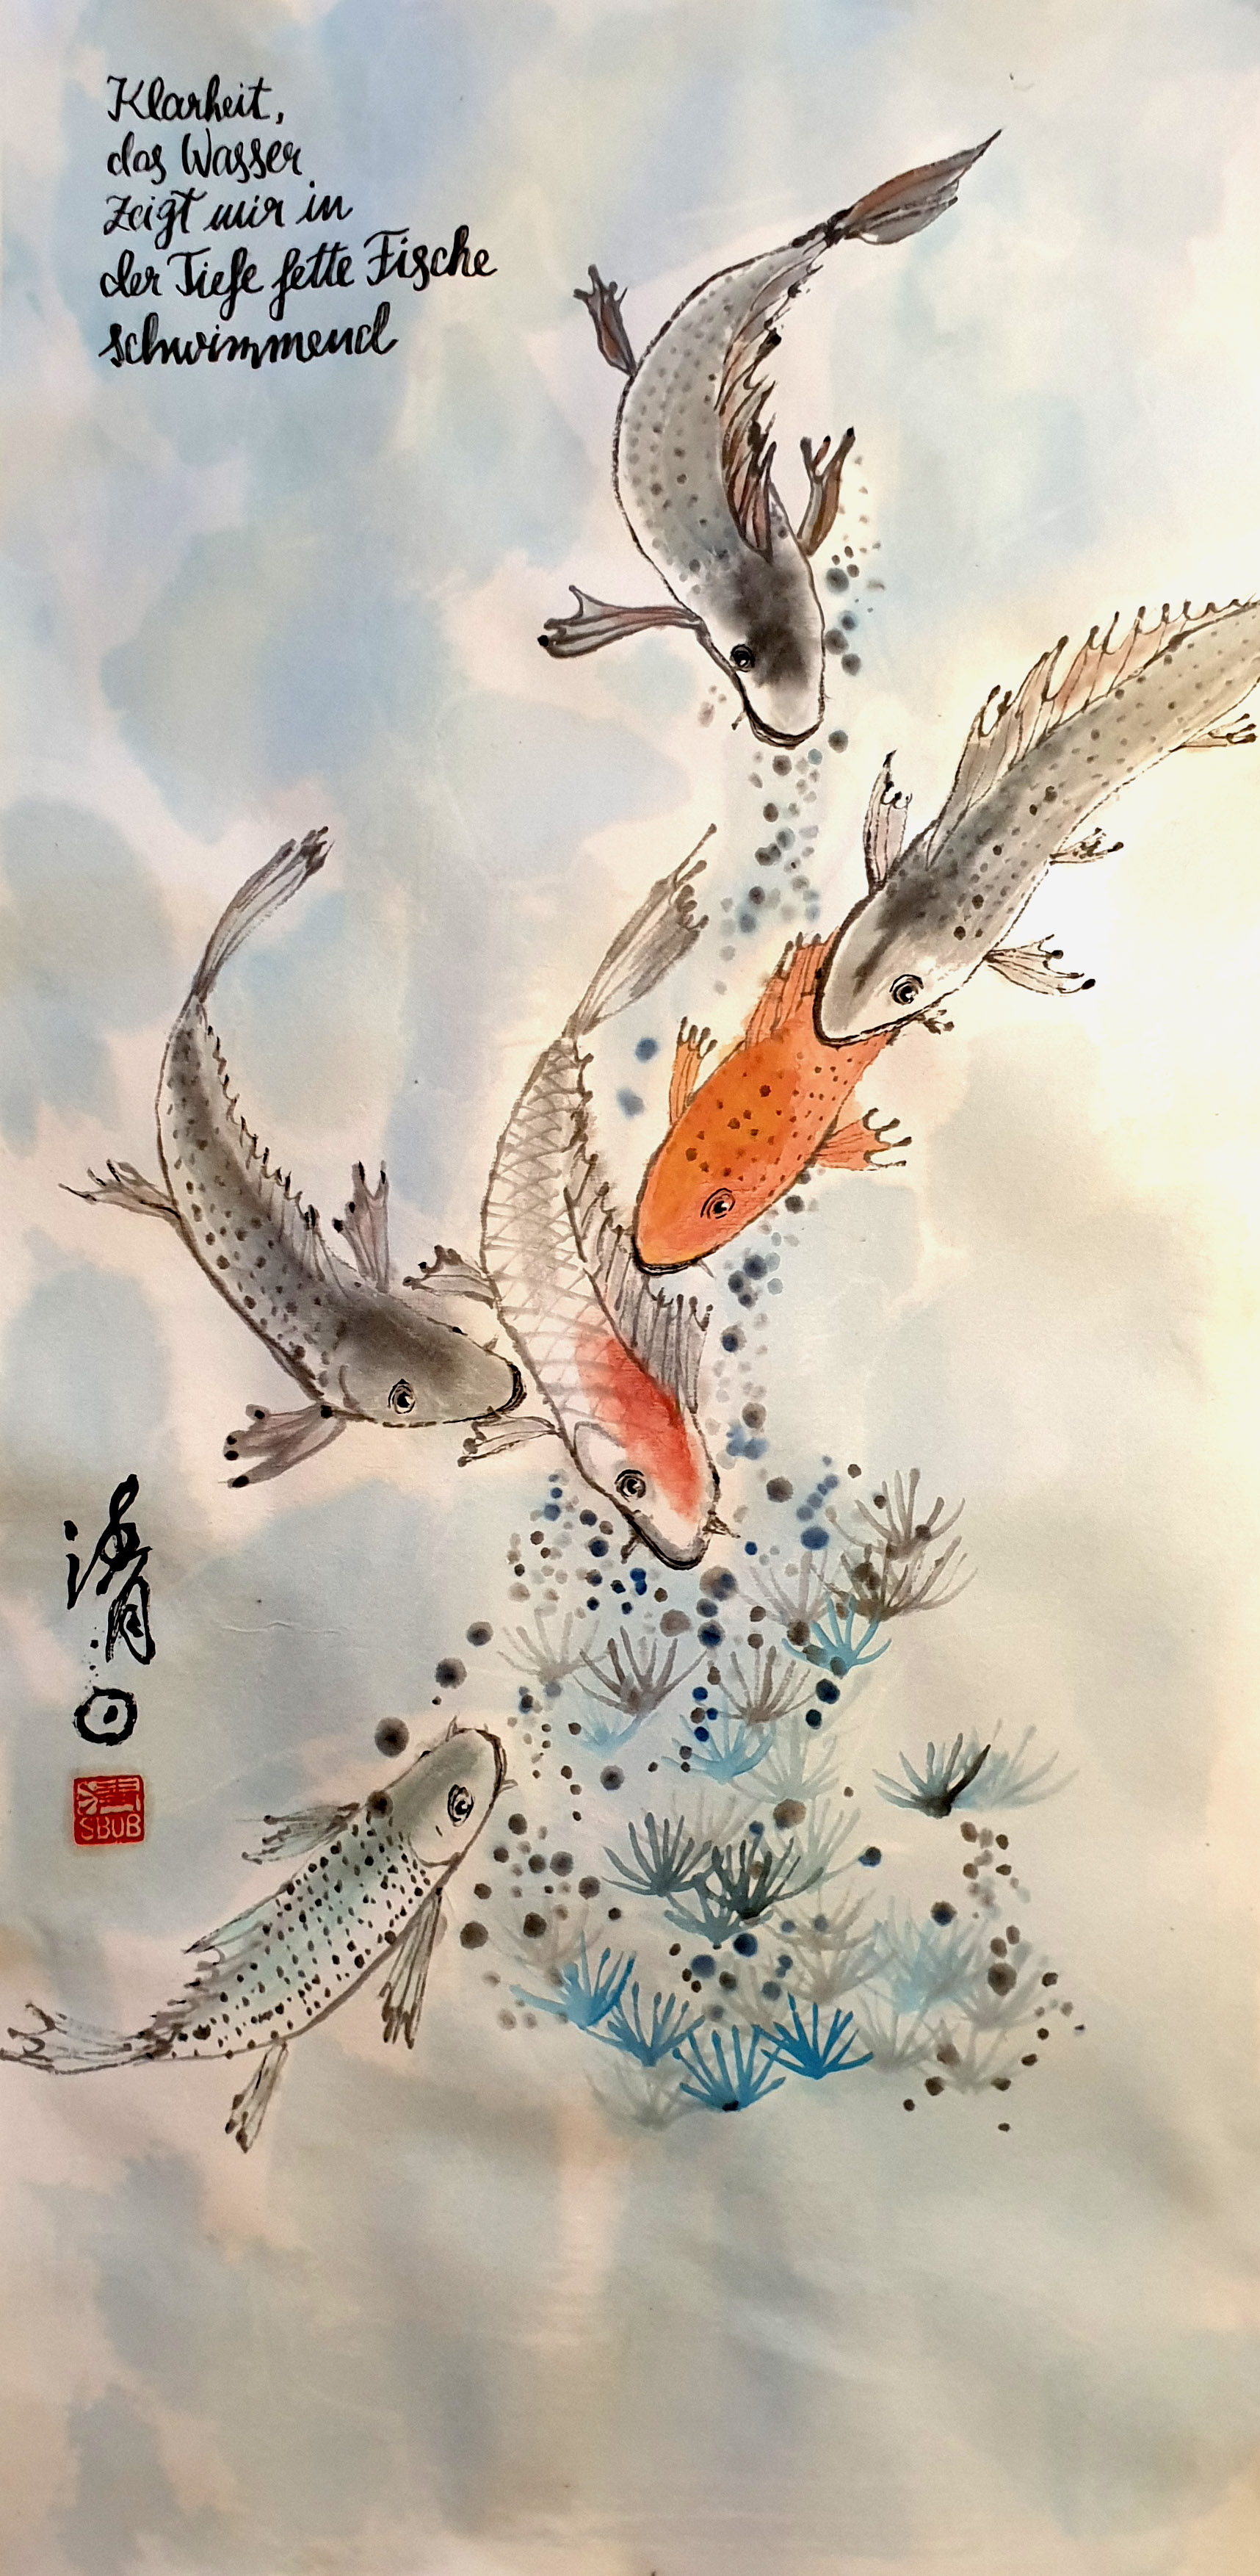 Zenpaintingsbob zenpainting Art artist chinese ink painting